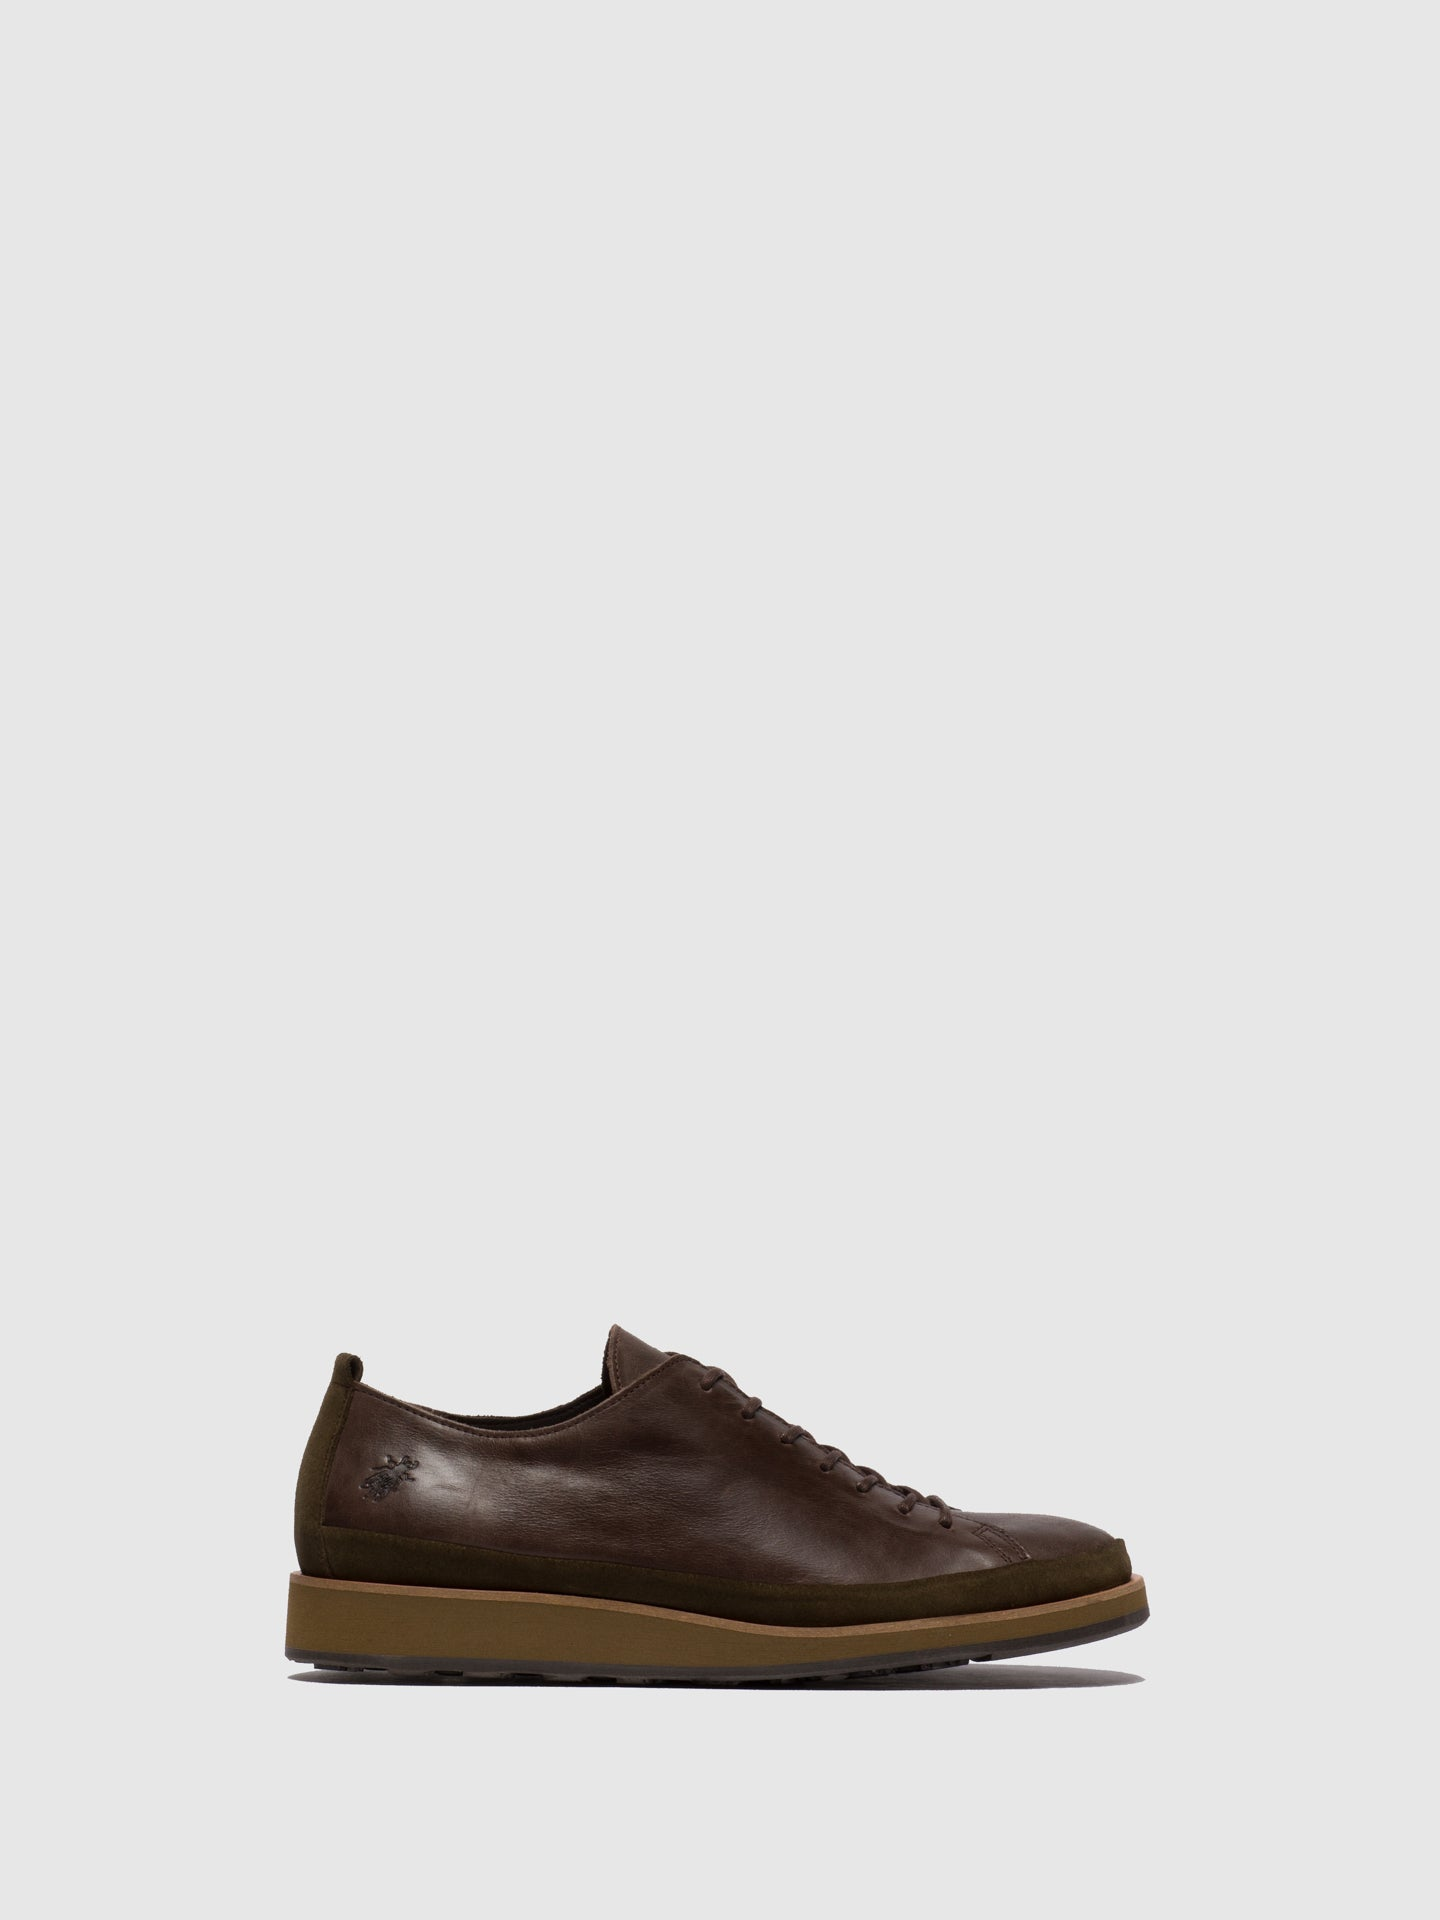 Fly London Lace-up Shoes JOLM691FLY ECO/OILSUEDE(VEGETAL) MOCCA/SLUDGE